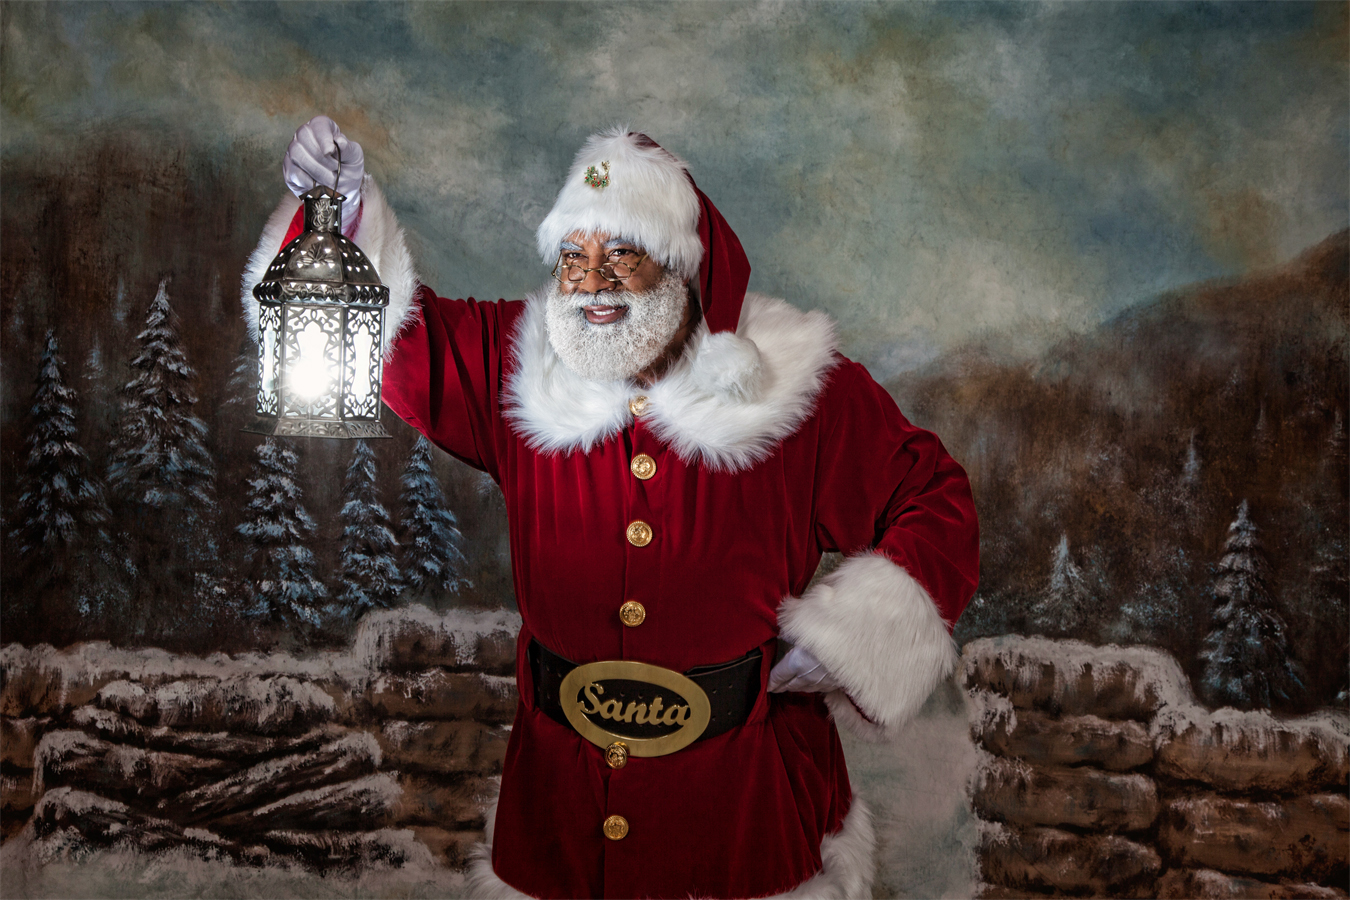 5 Professional Santas Reveal Their Secrets, From $800-an-Hour Pay to Beard Maintenance